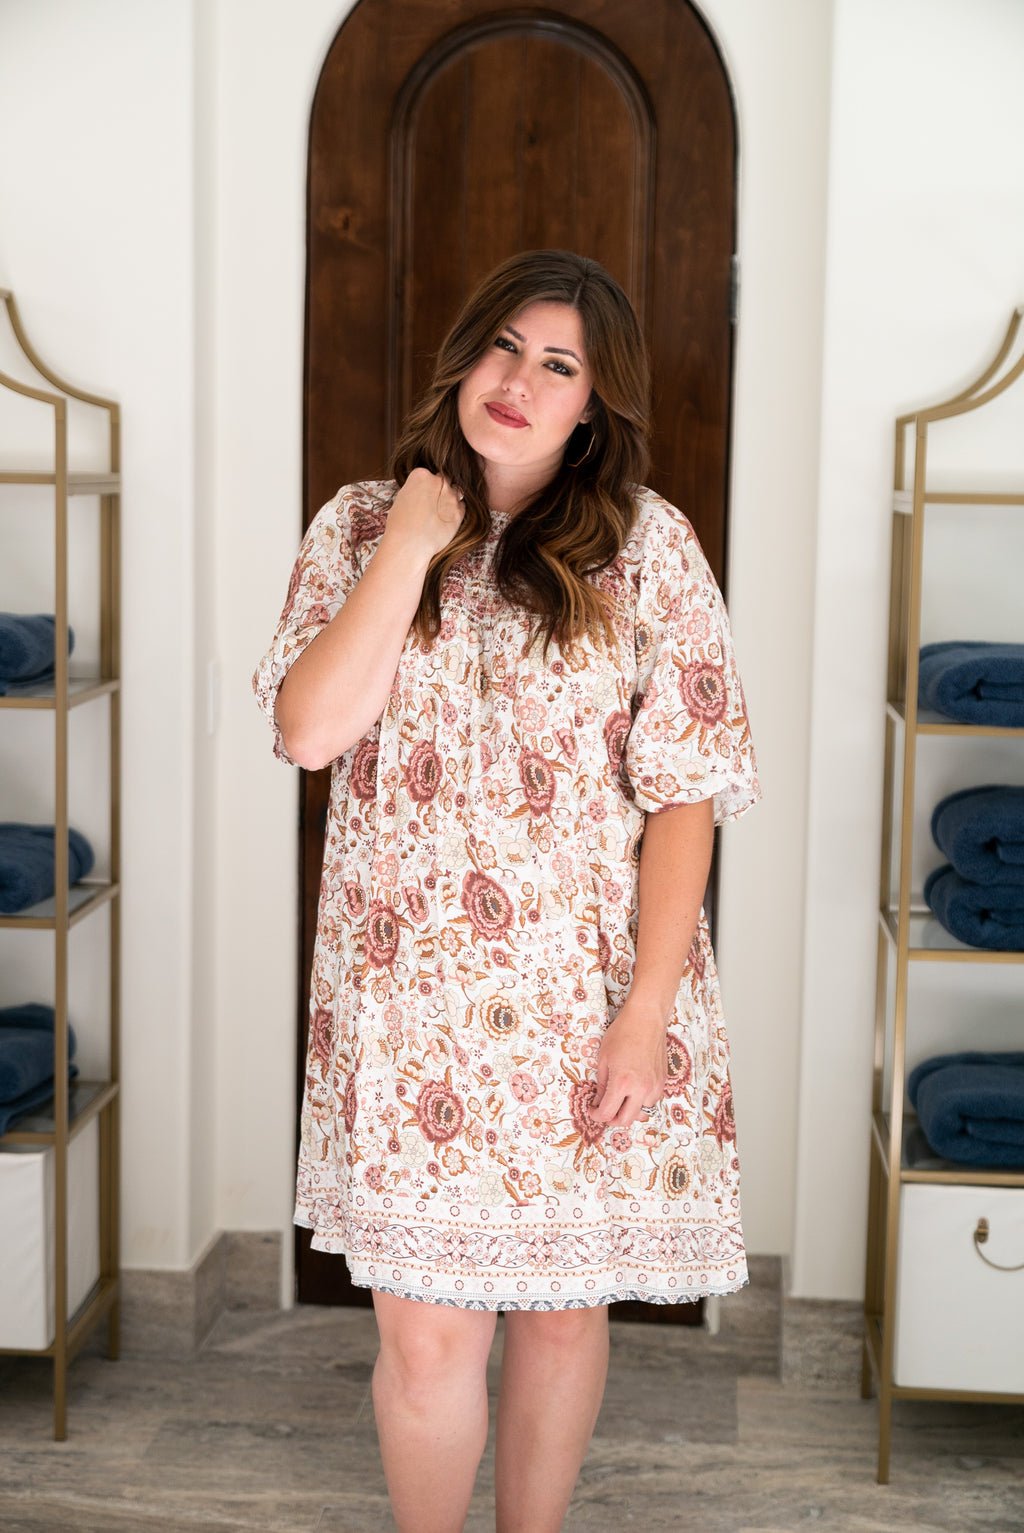 The Istanbul Floral Dress (Sizes S-3X)